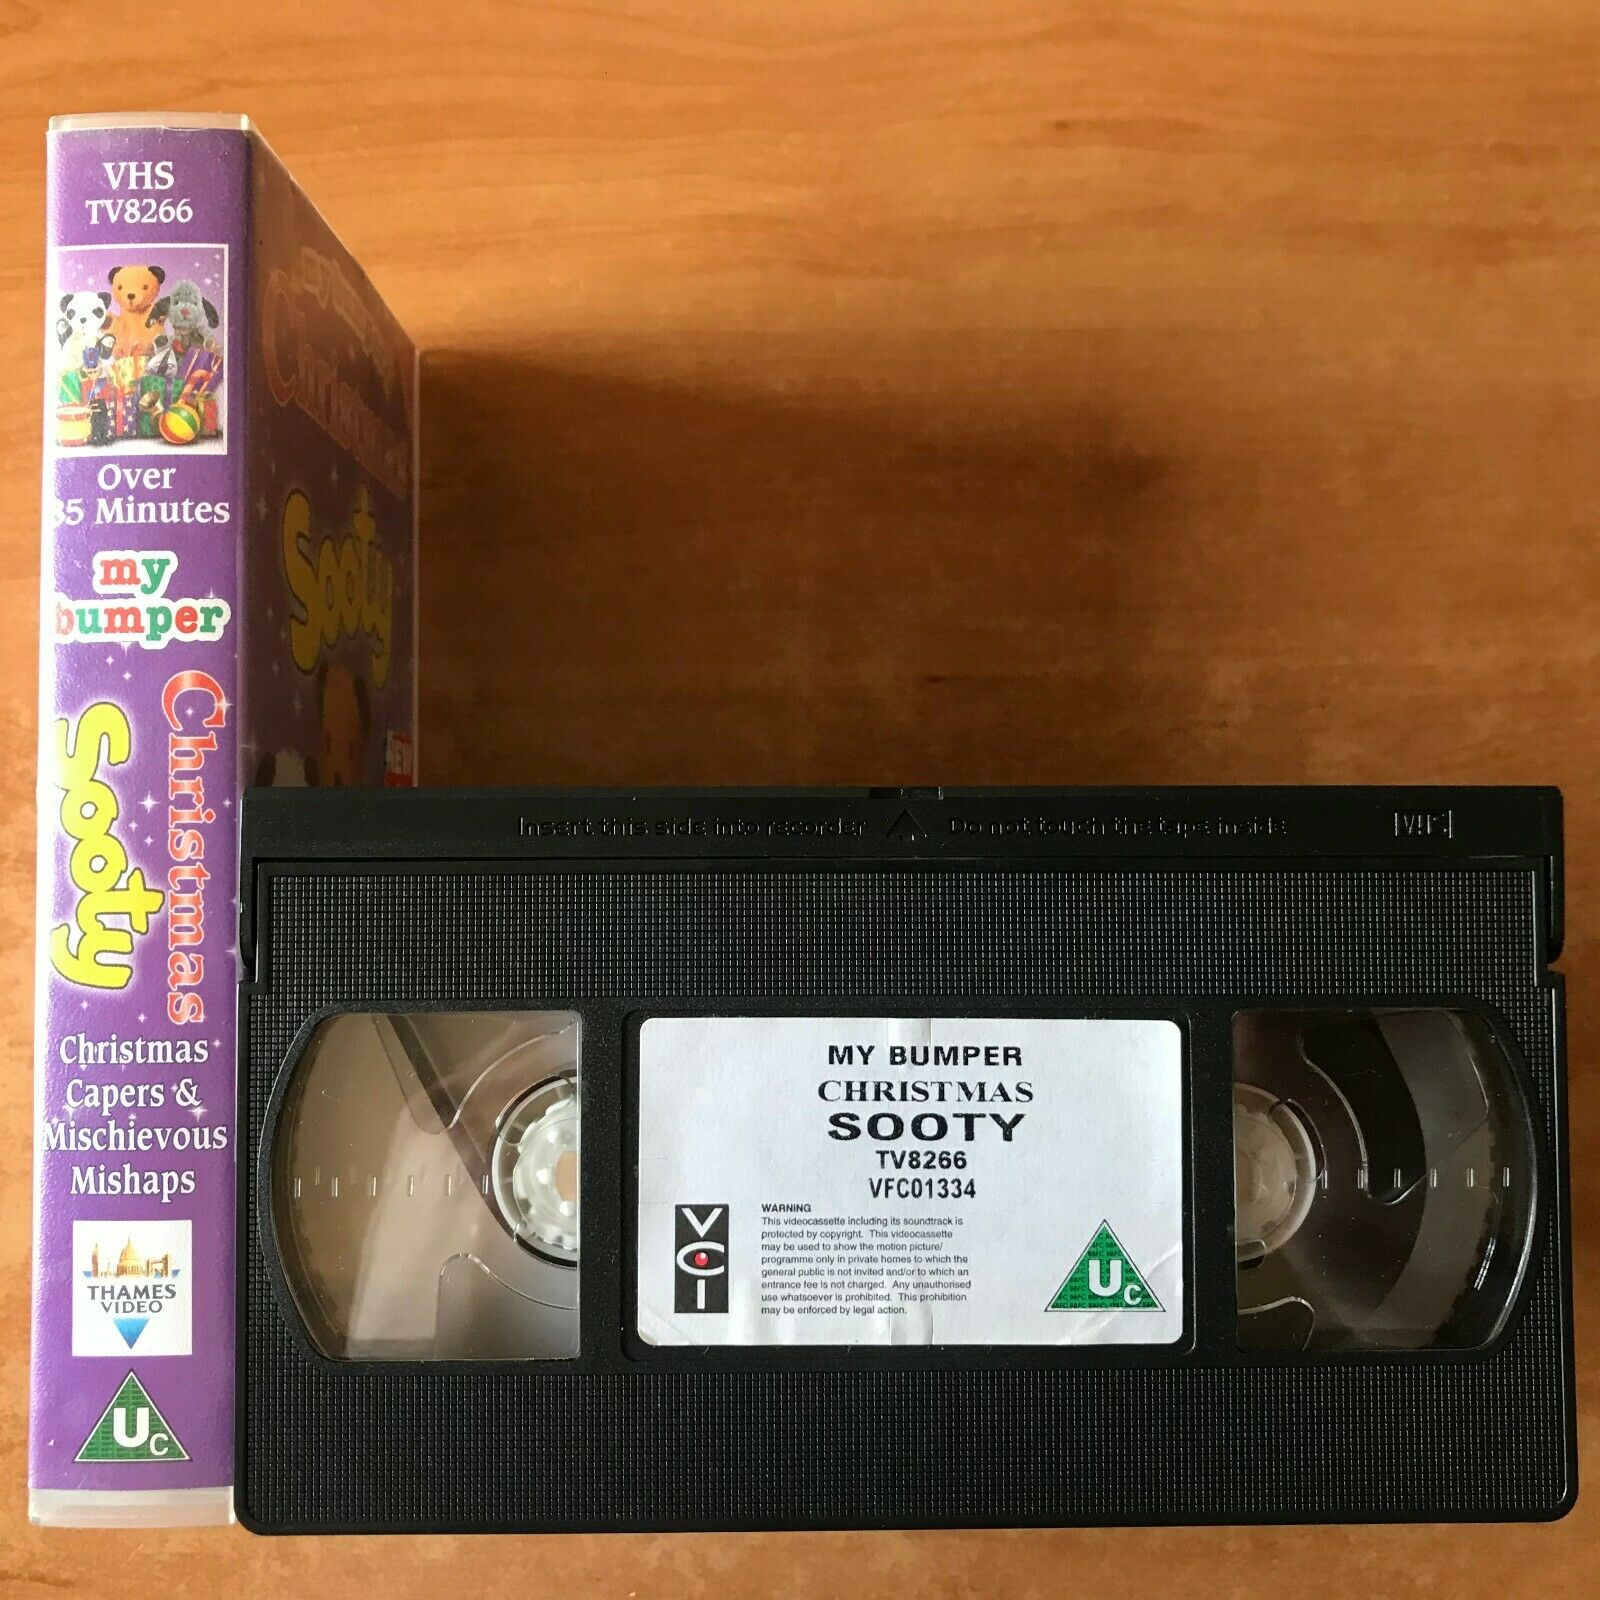 [My Bumper] Christmas With Sooty (Over 85mins]: Mischievous Mishaps - Kids - VHS